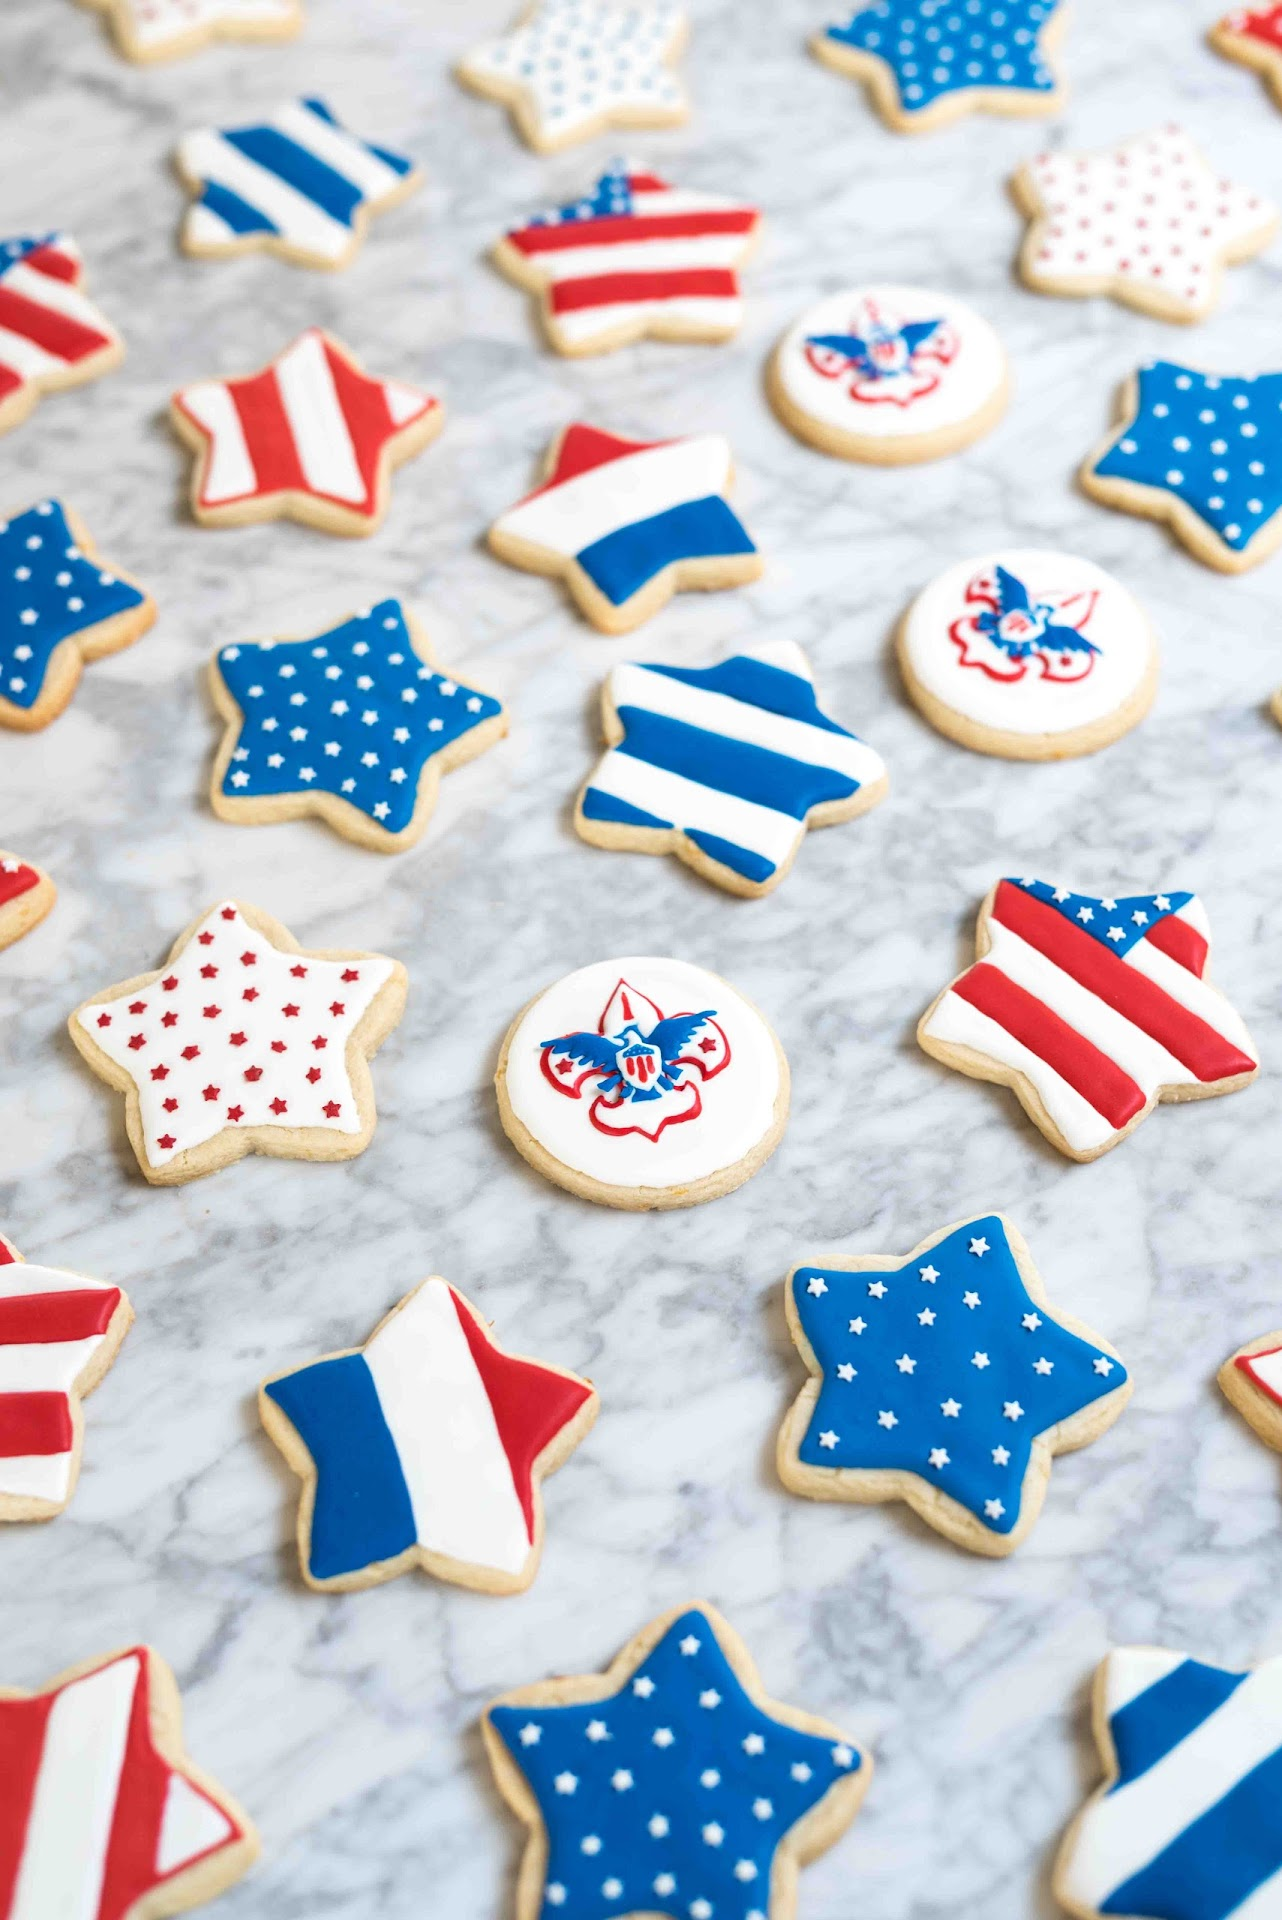 patriotic cookies, dessert, stars, cutout cookies, sugar cookies, lemon sugar cookies, best tasting sugar cookies, royal icing, tips, ideas, how to decorating sugar cookies, best royal icing, boy scout cookies, red white and blue, summer, usa, flag, star dessert, court of honor, american flag, flag cookies, 4th of july,